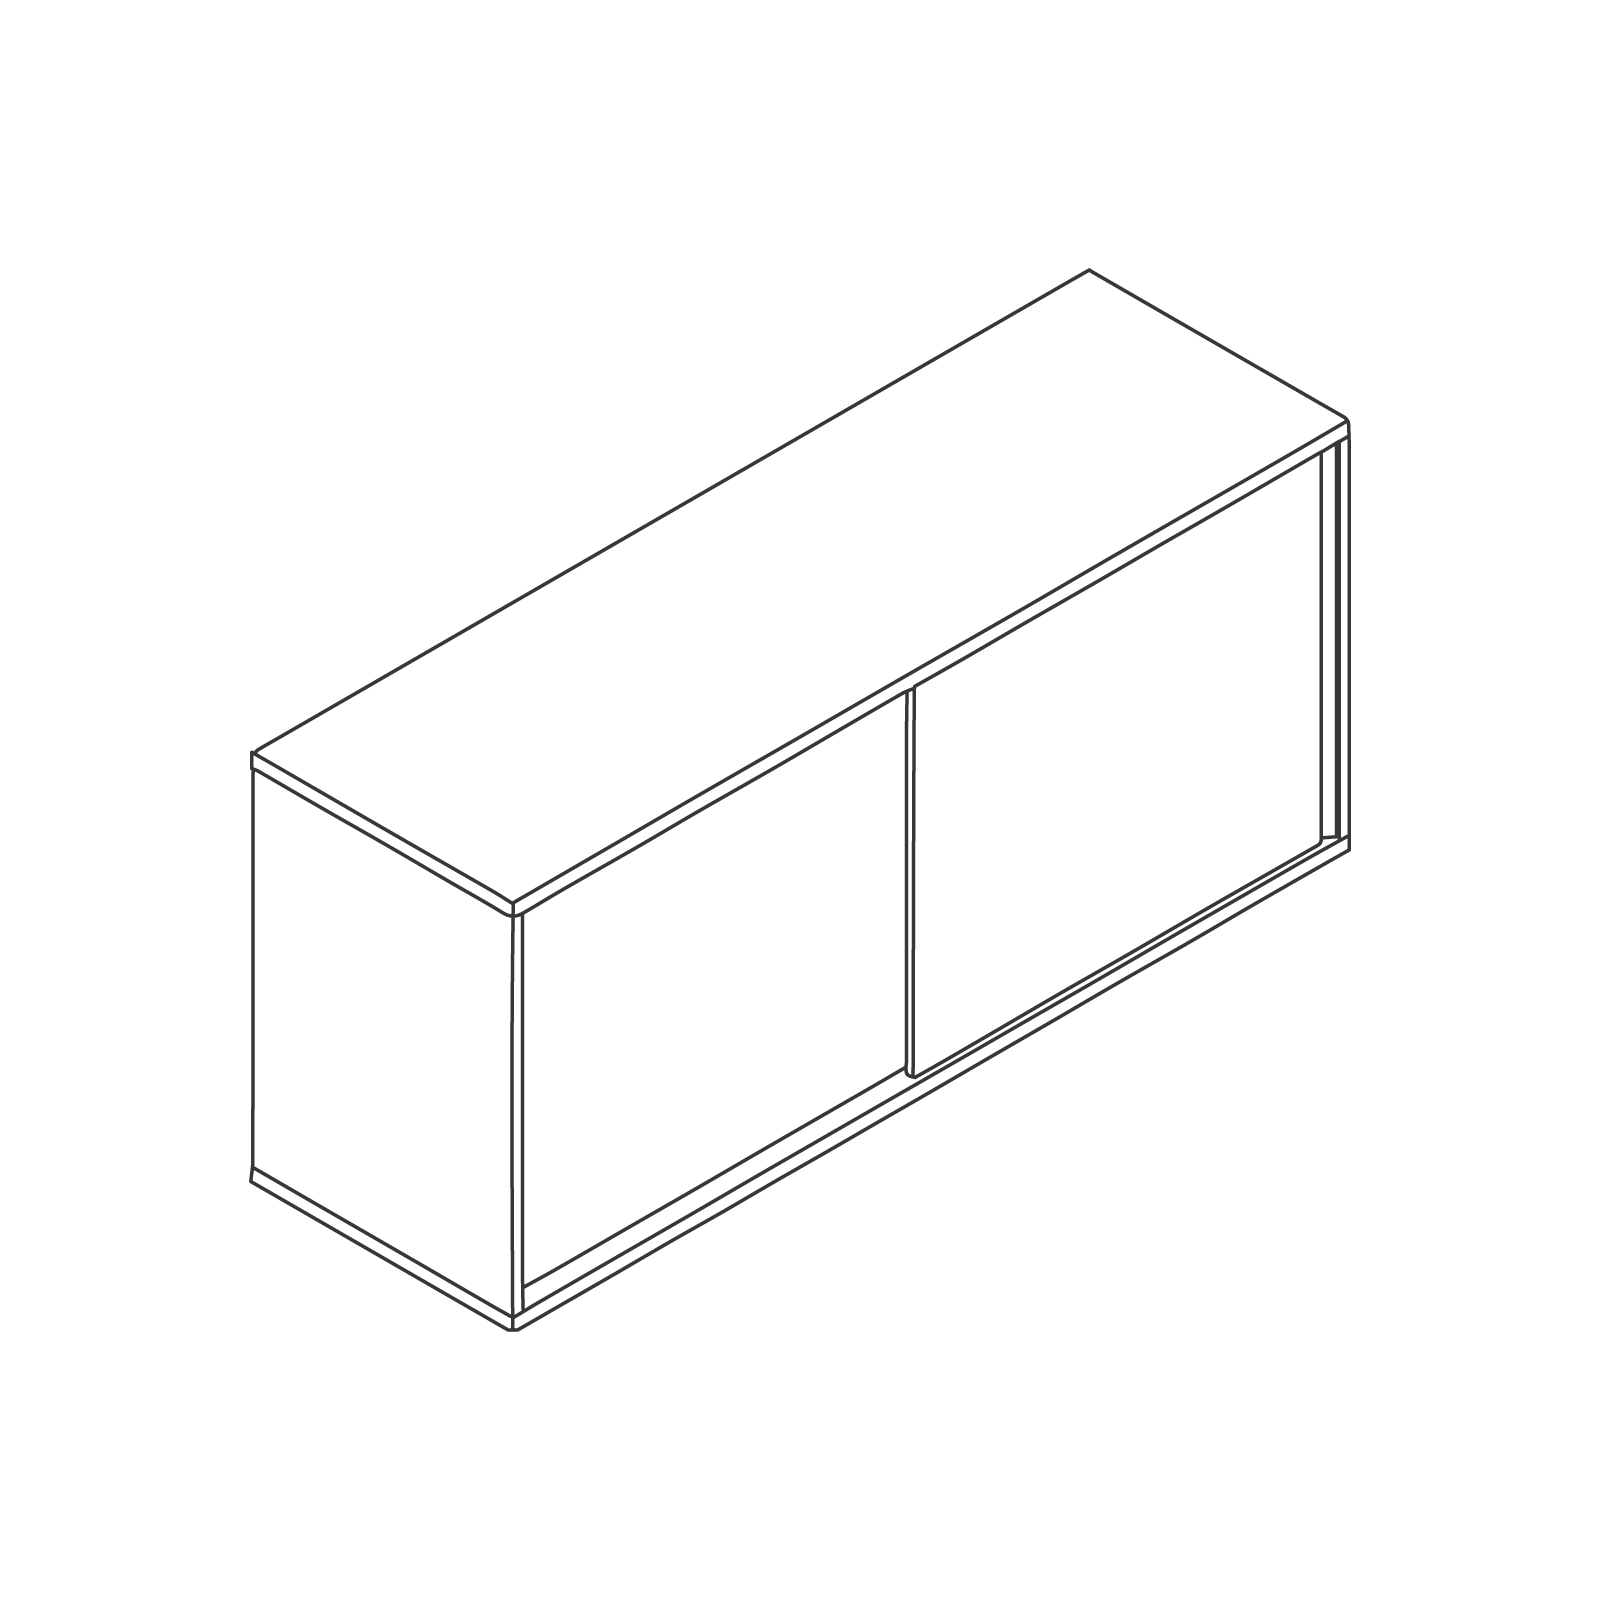 A line drawing of Softbox Storage Credenza–Medium.